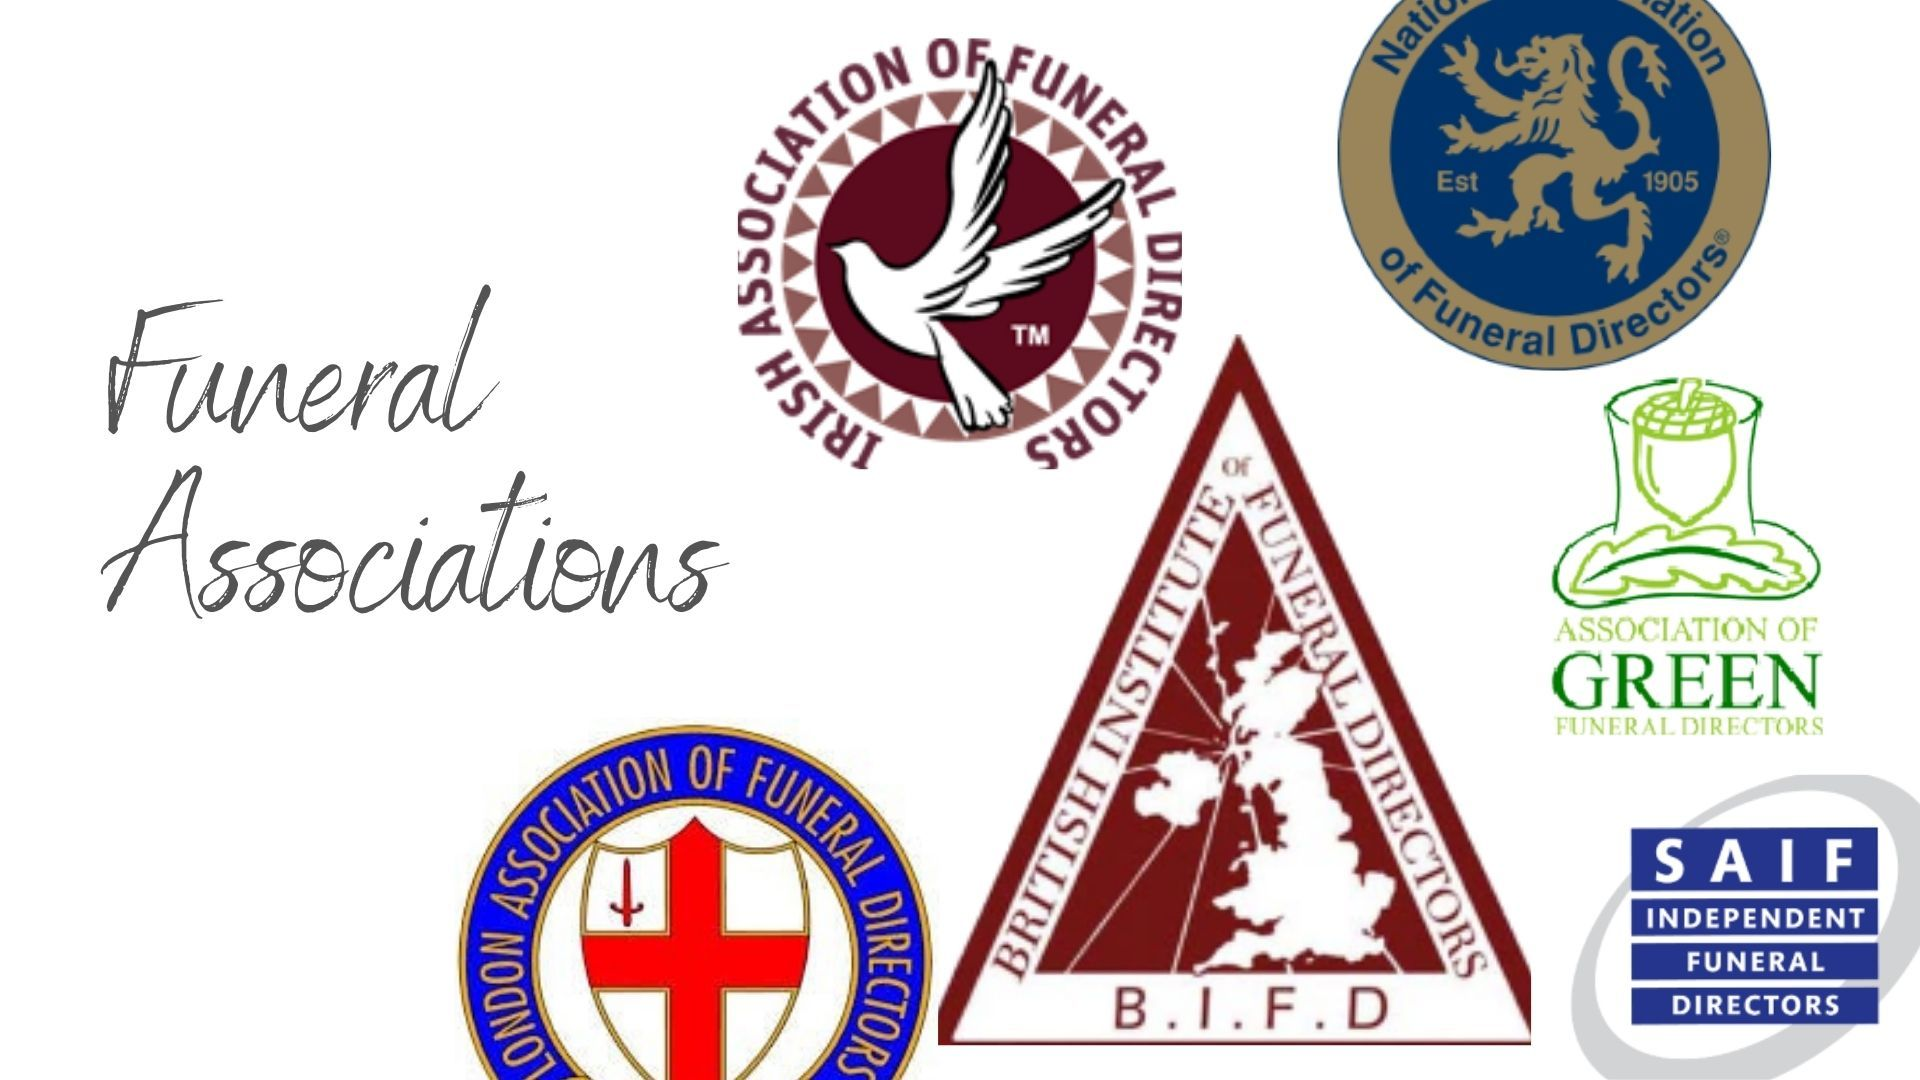 The Complete List of Funeral Associations in the UK and Ireland